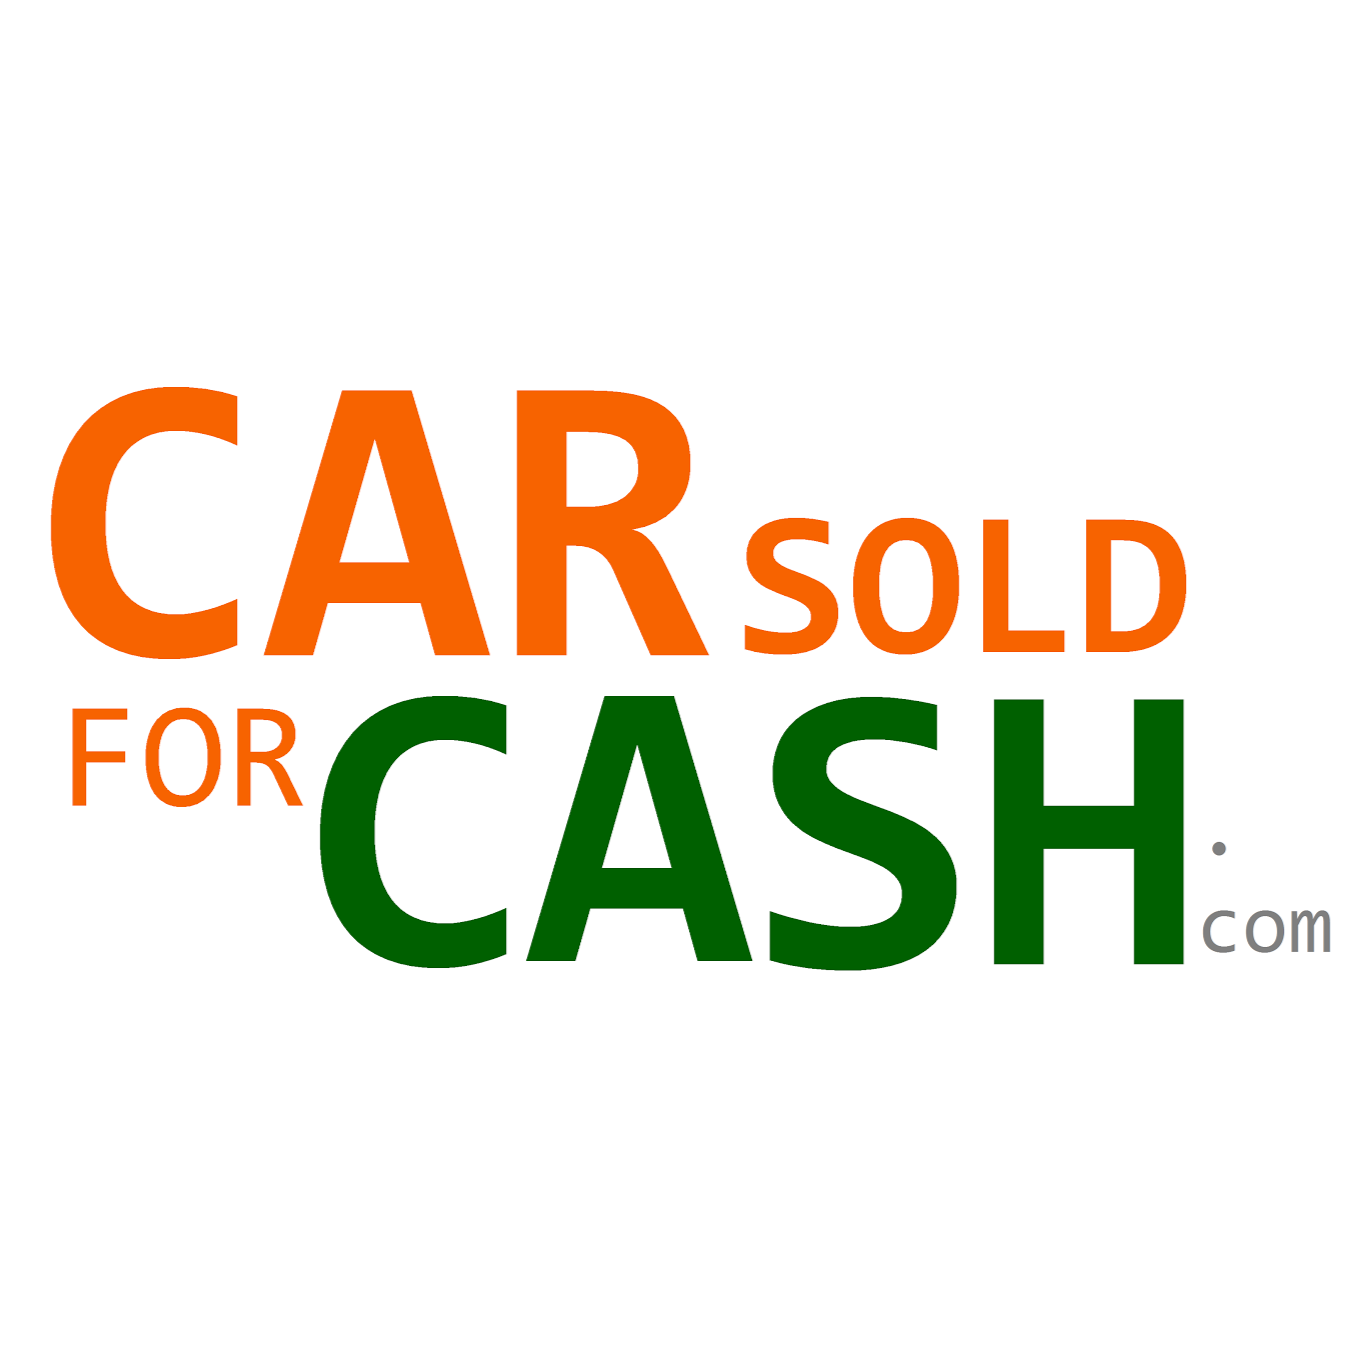 Cash for Junk & Used Cars - CAR SOLD FOR CASH